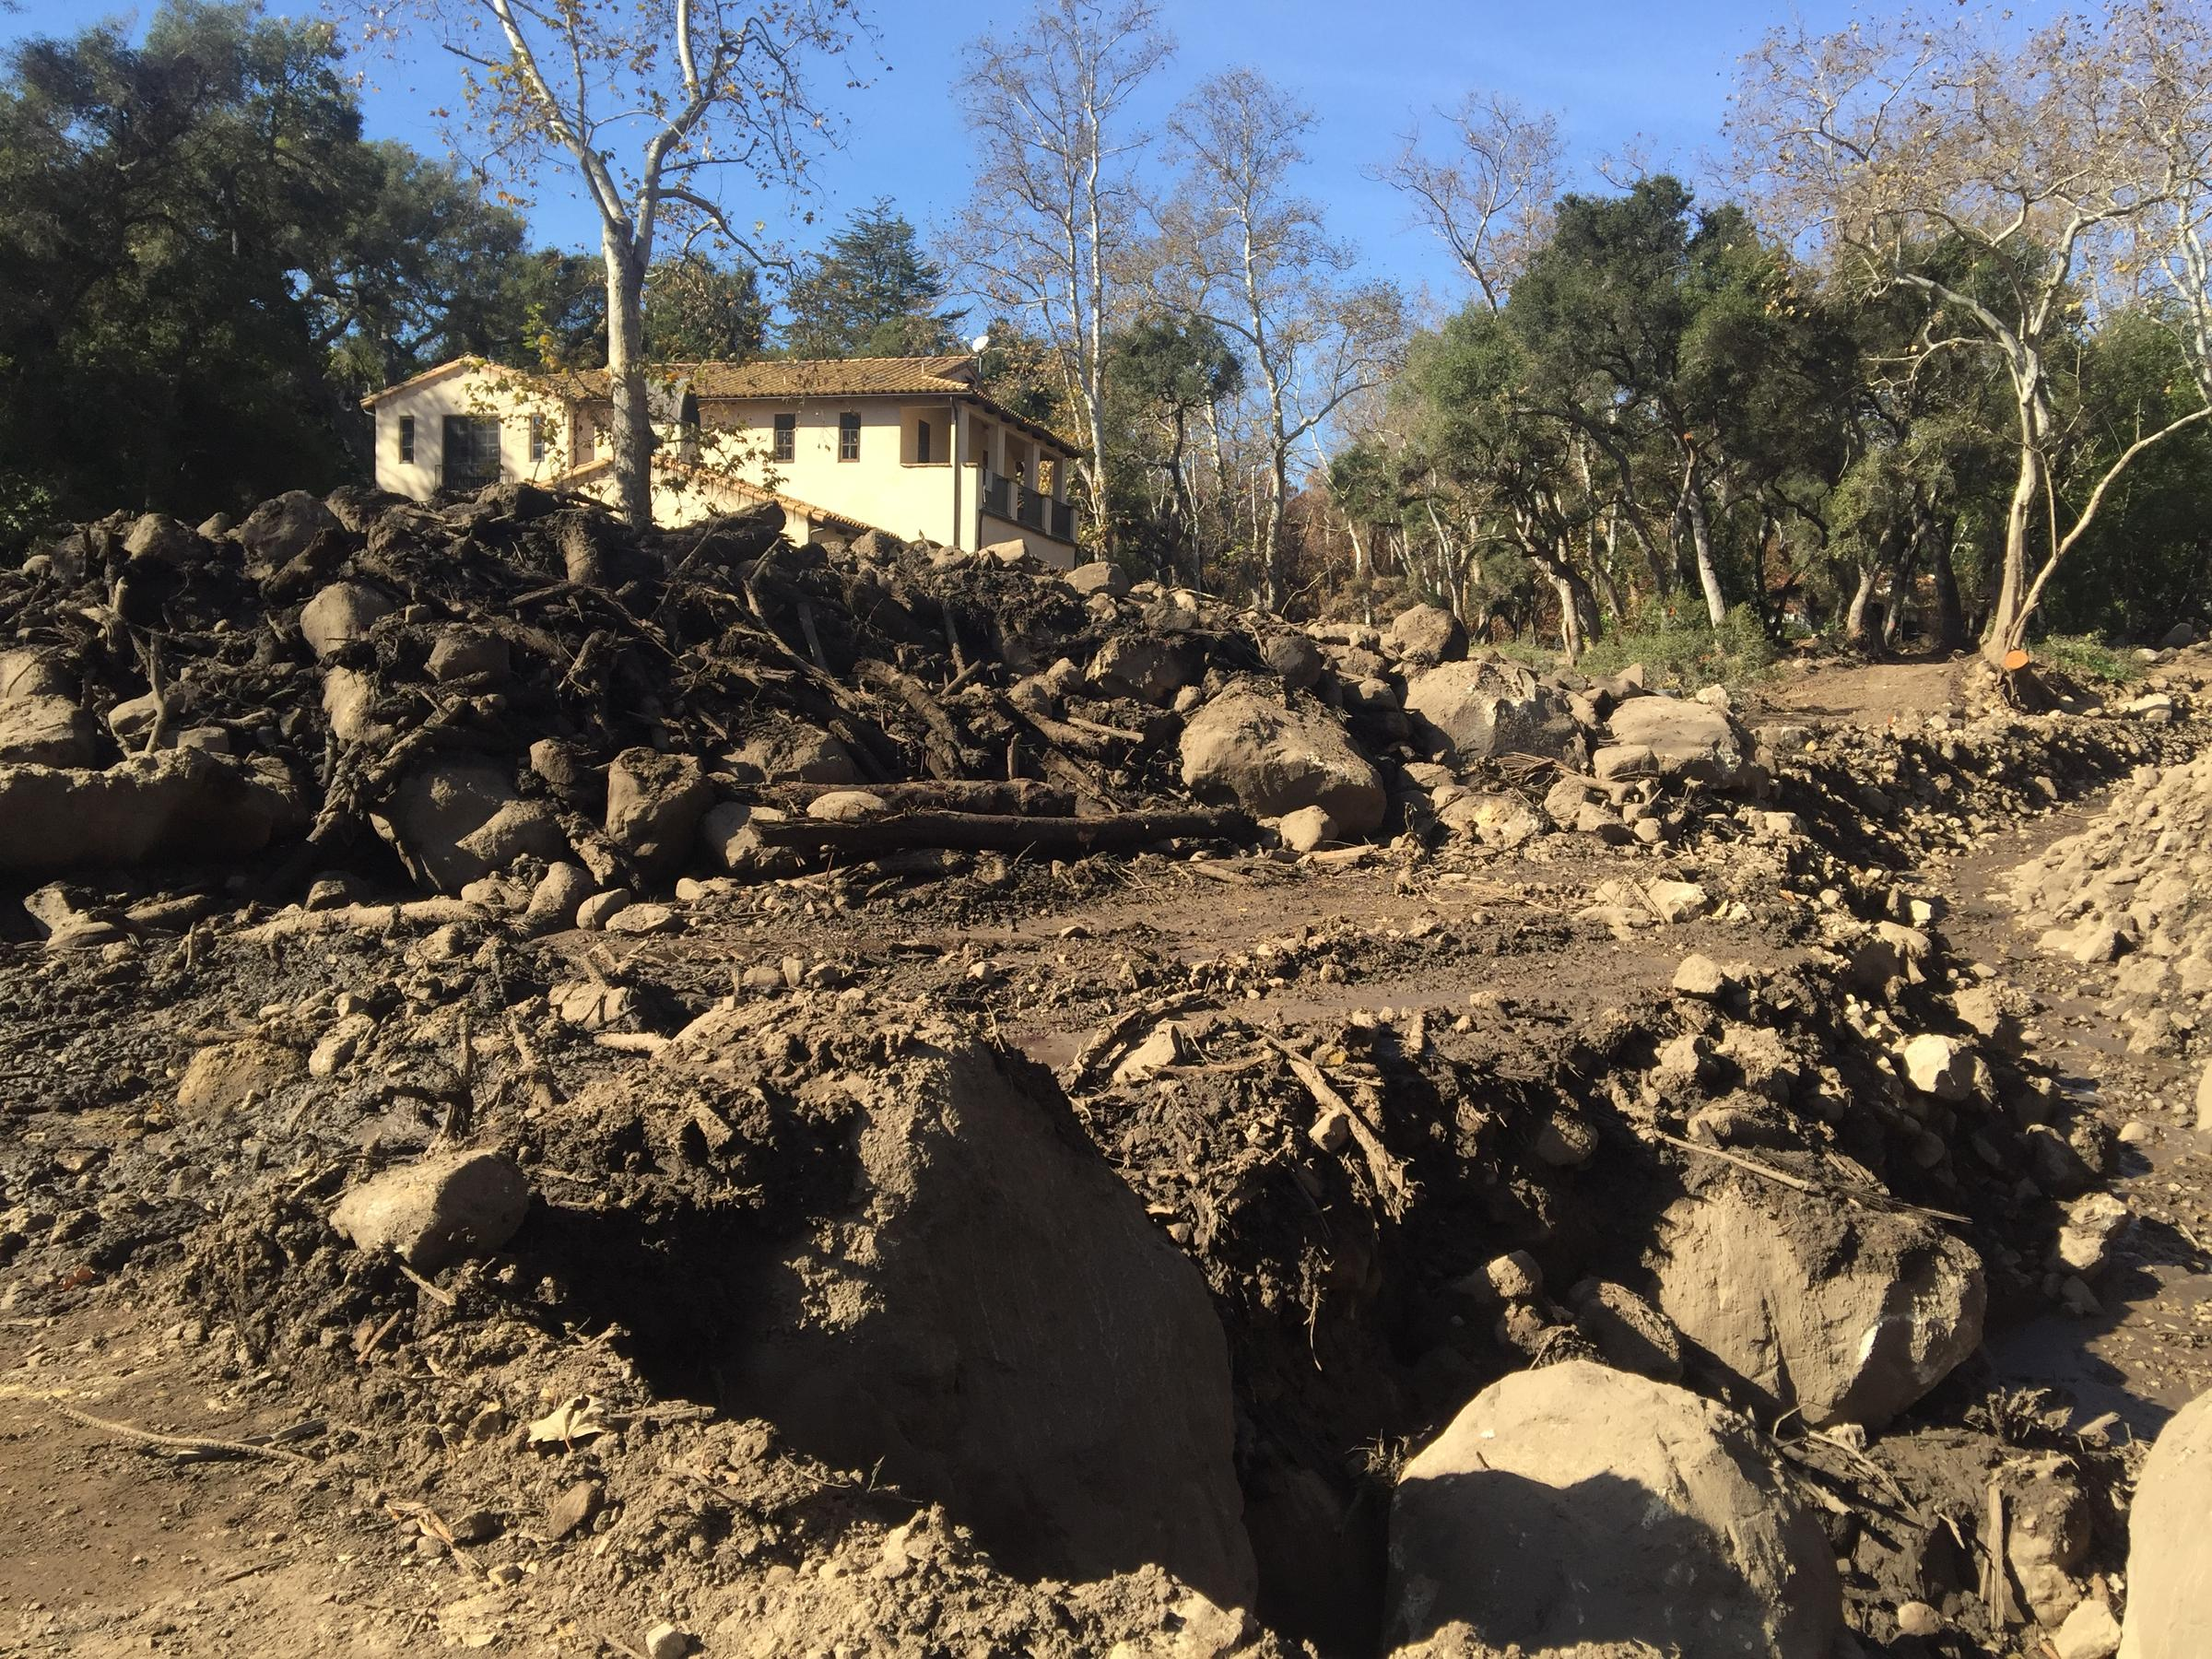 Mandatory Evacuations Ordered: Santa Barbara Burn Areas Brace For More Mudslides